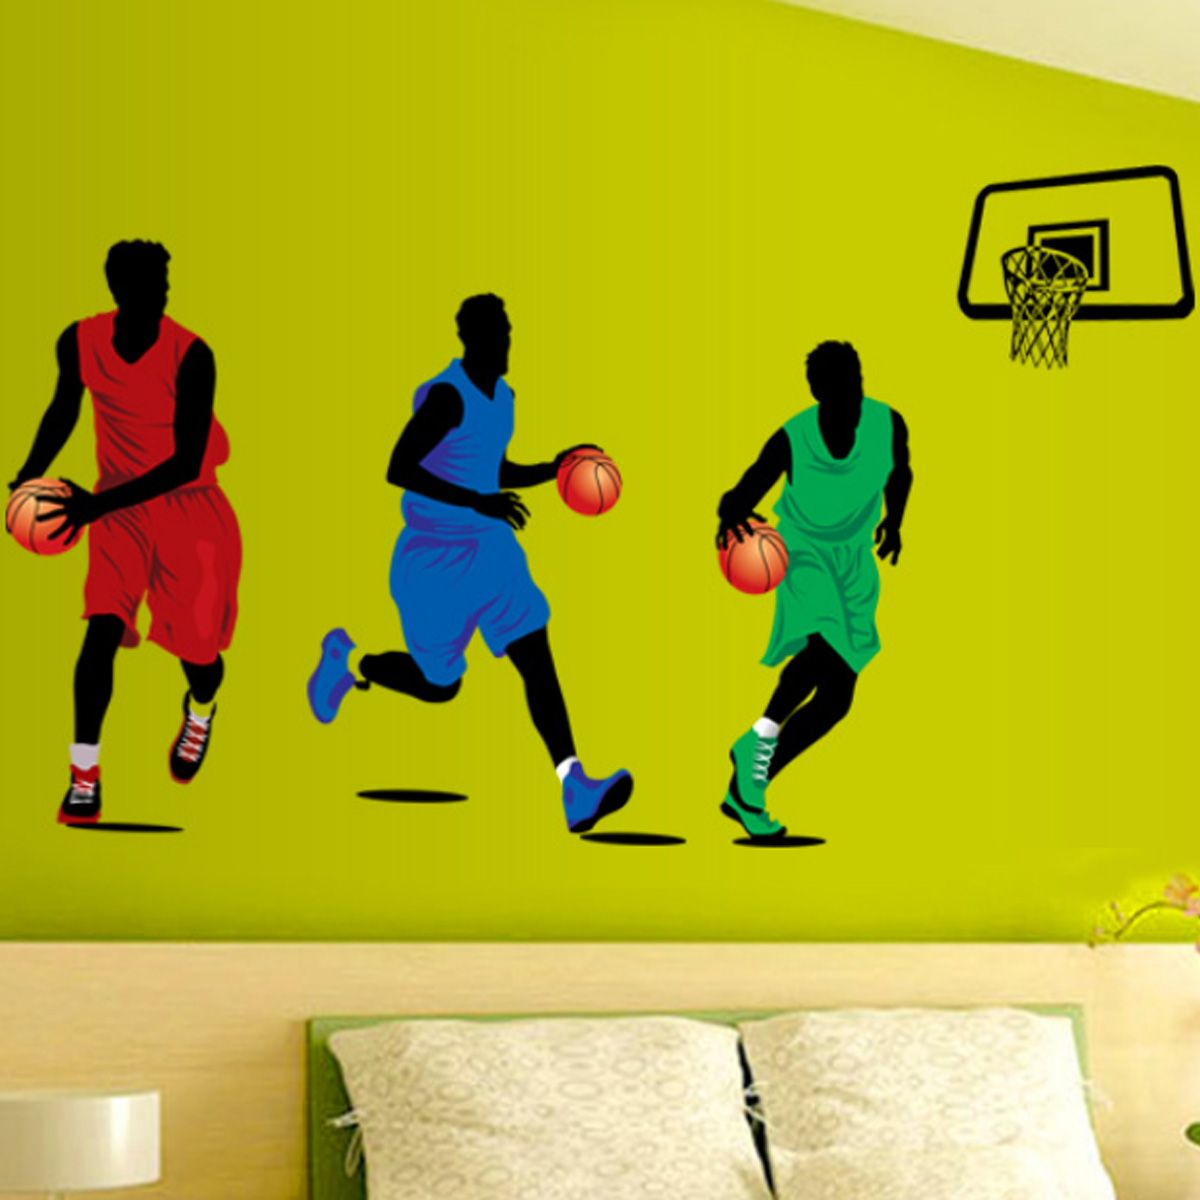 Malerisch Wandtattoo Basketball Foto Von Playing Sports Wall Decal Removable Home Room